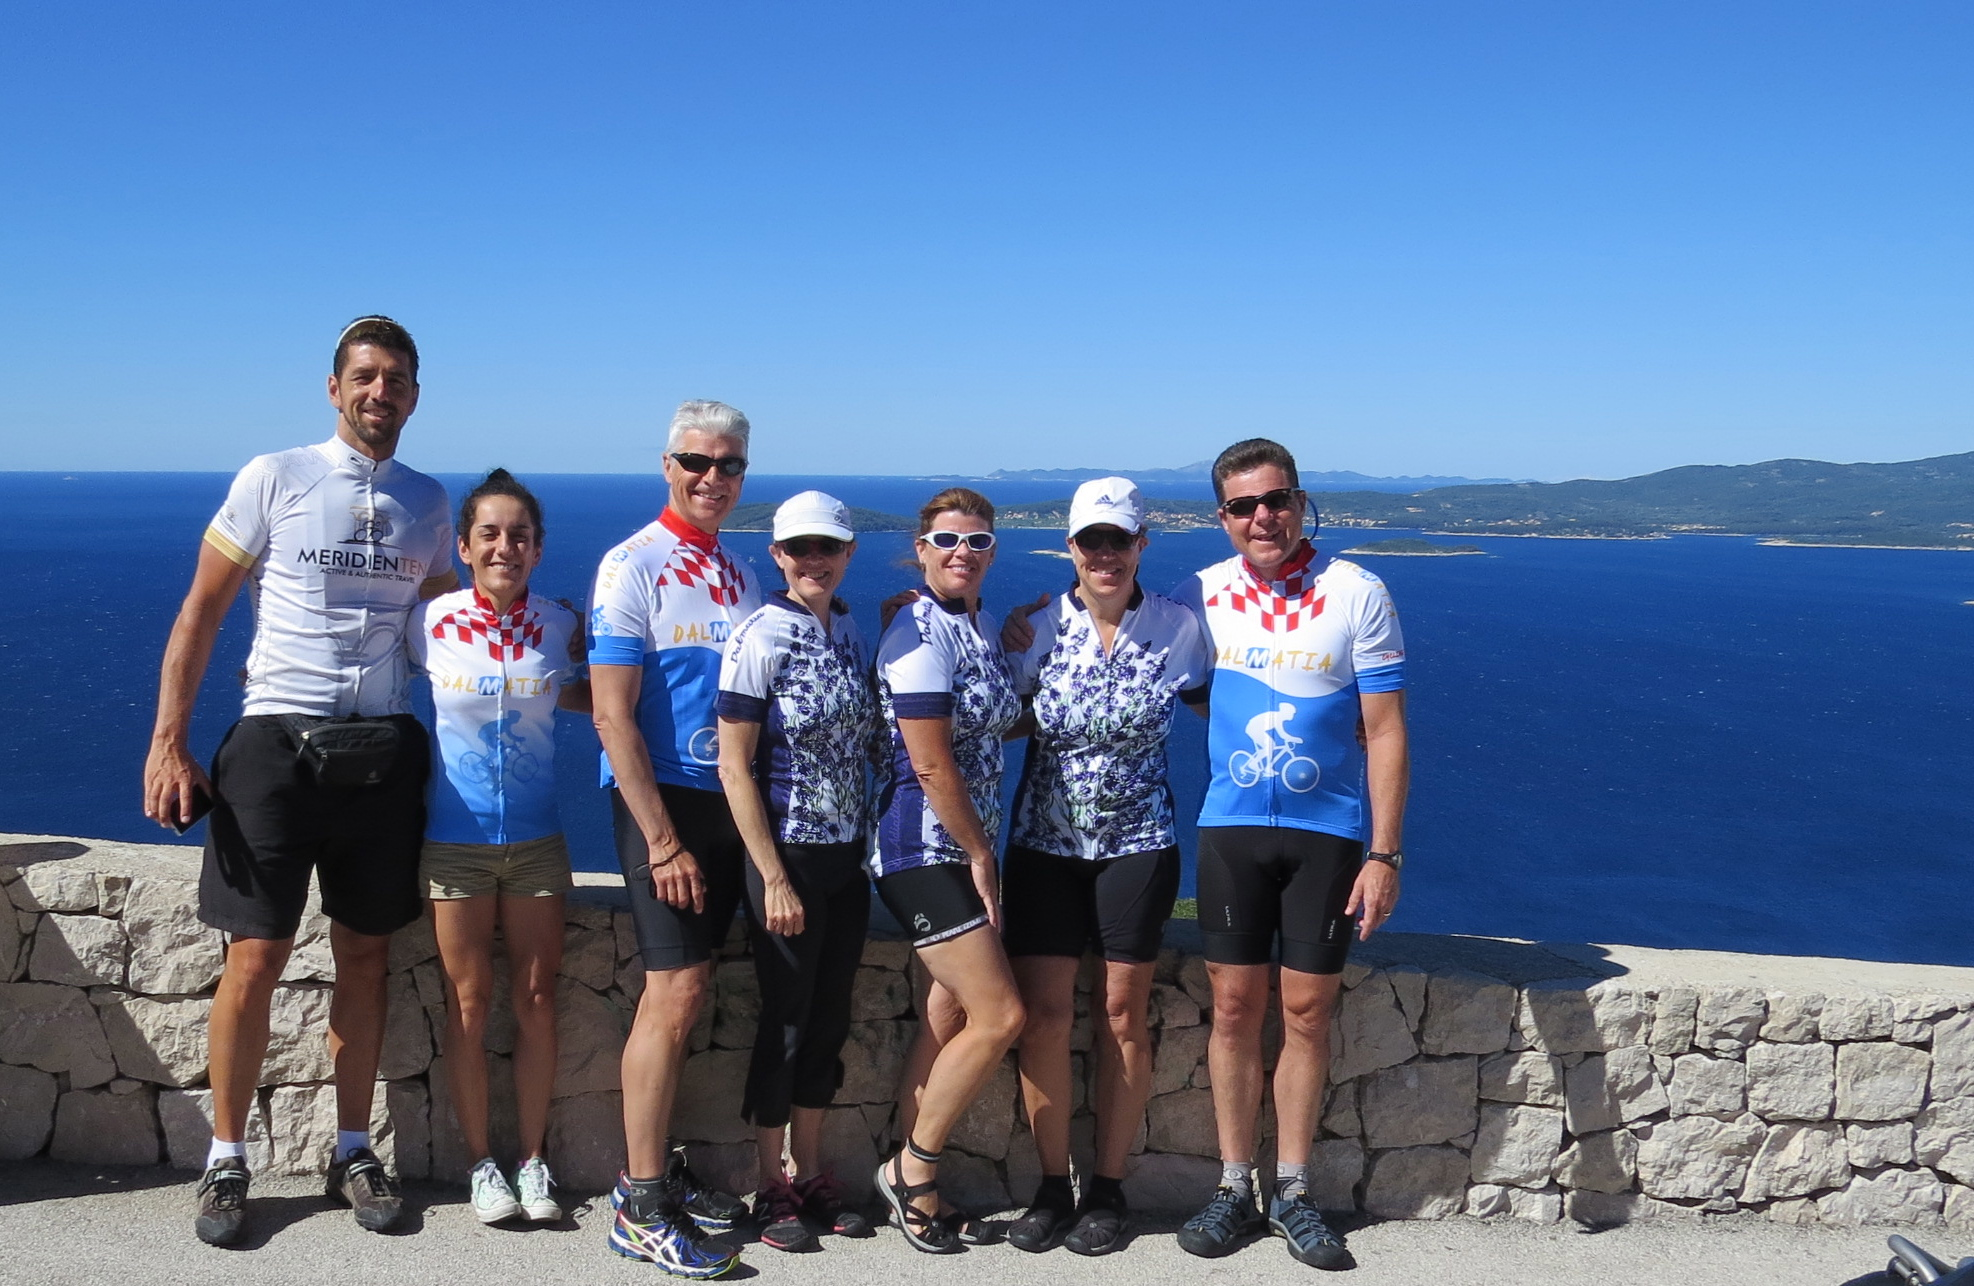 Dalmatian coast classic bike tour